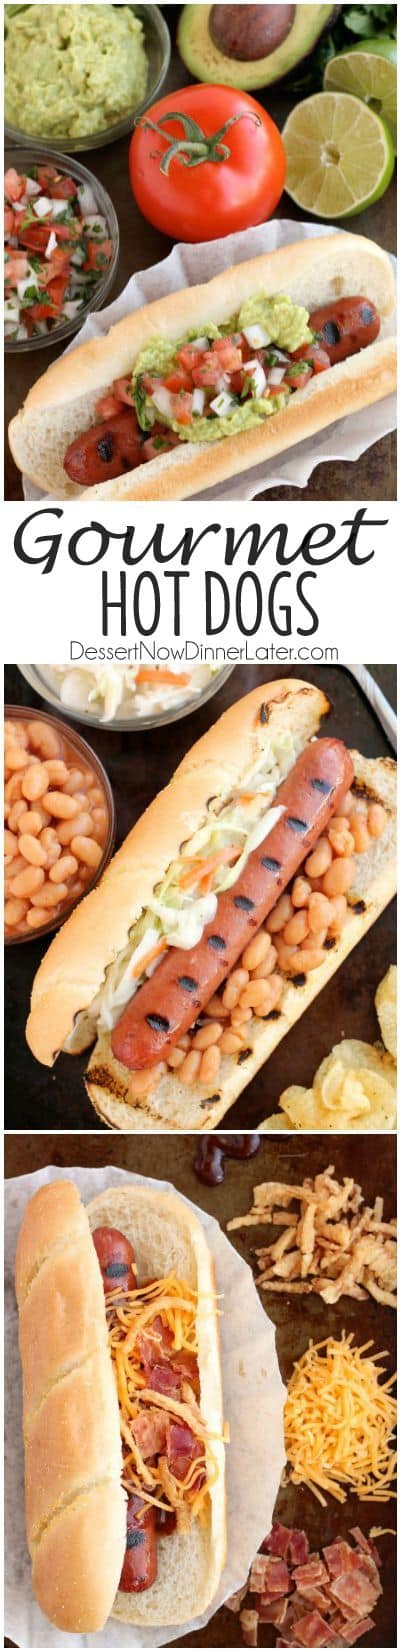 For your next barbecue or backyard grilling party, impress your guests with these Gourmet Hot Dogs 3 Ways: Mexican, Southern, and Western-style.